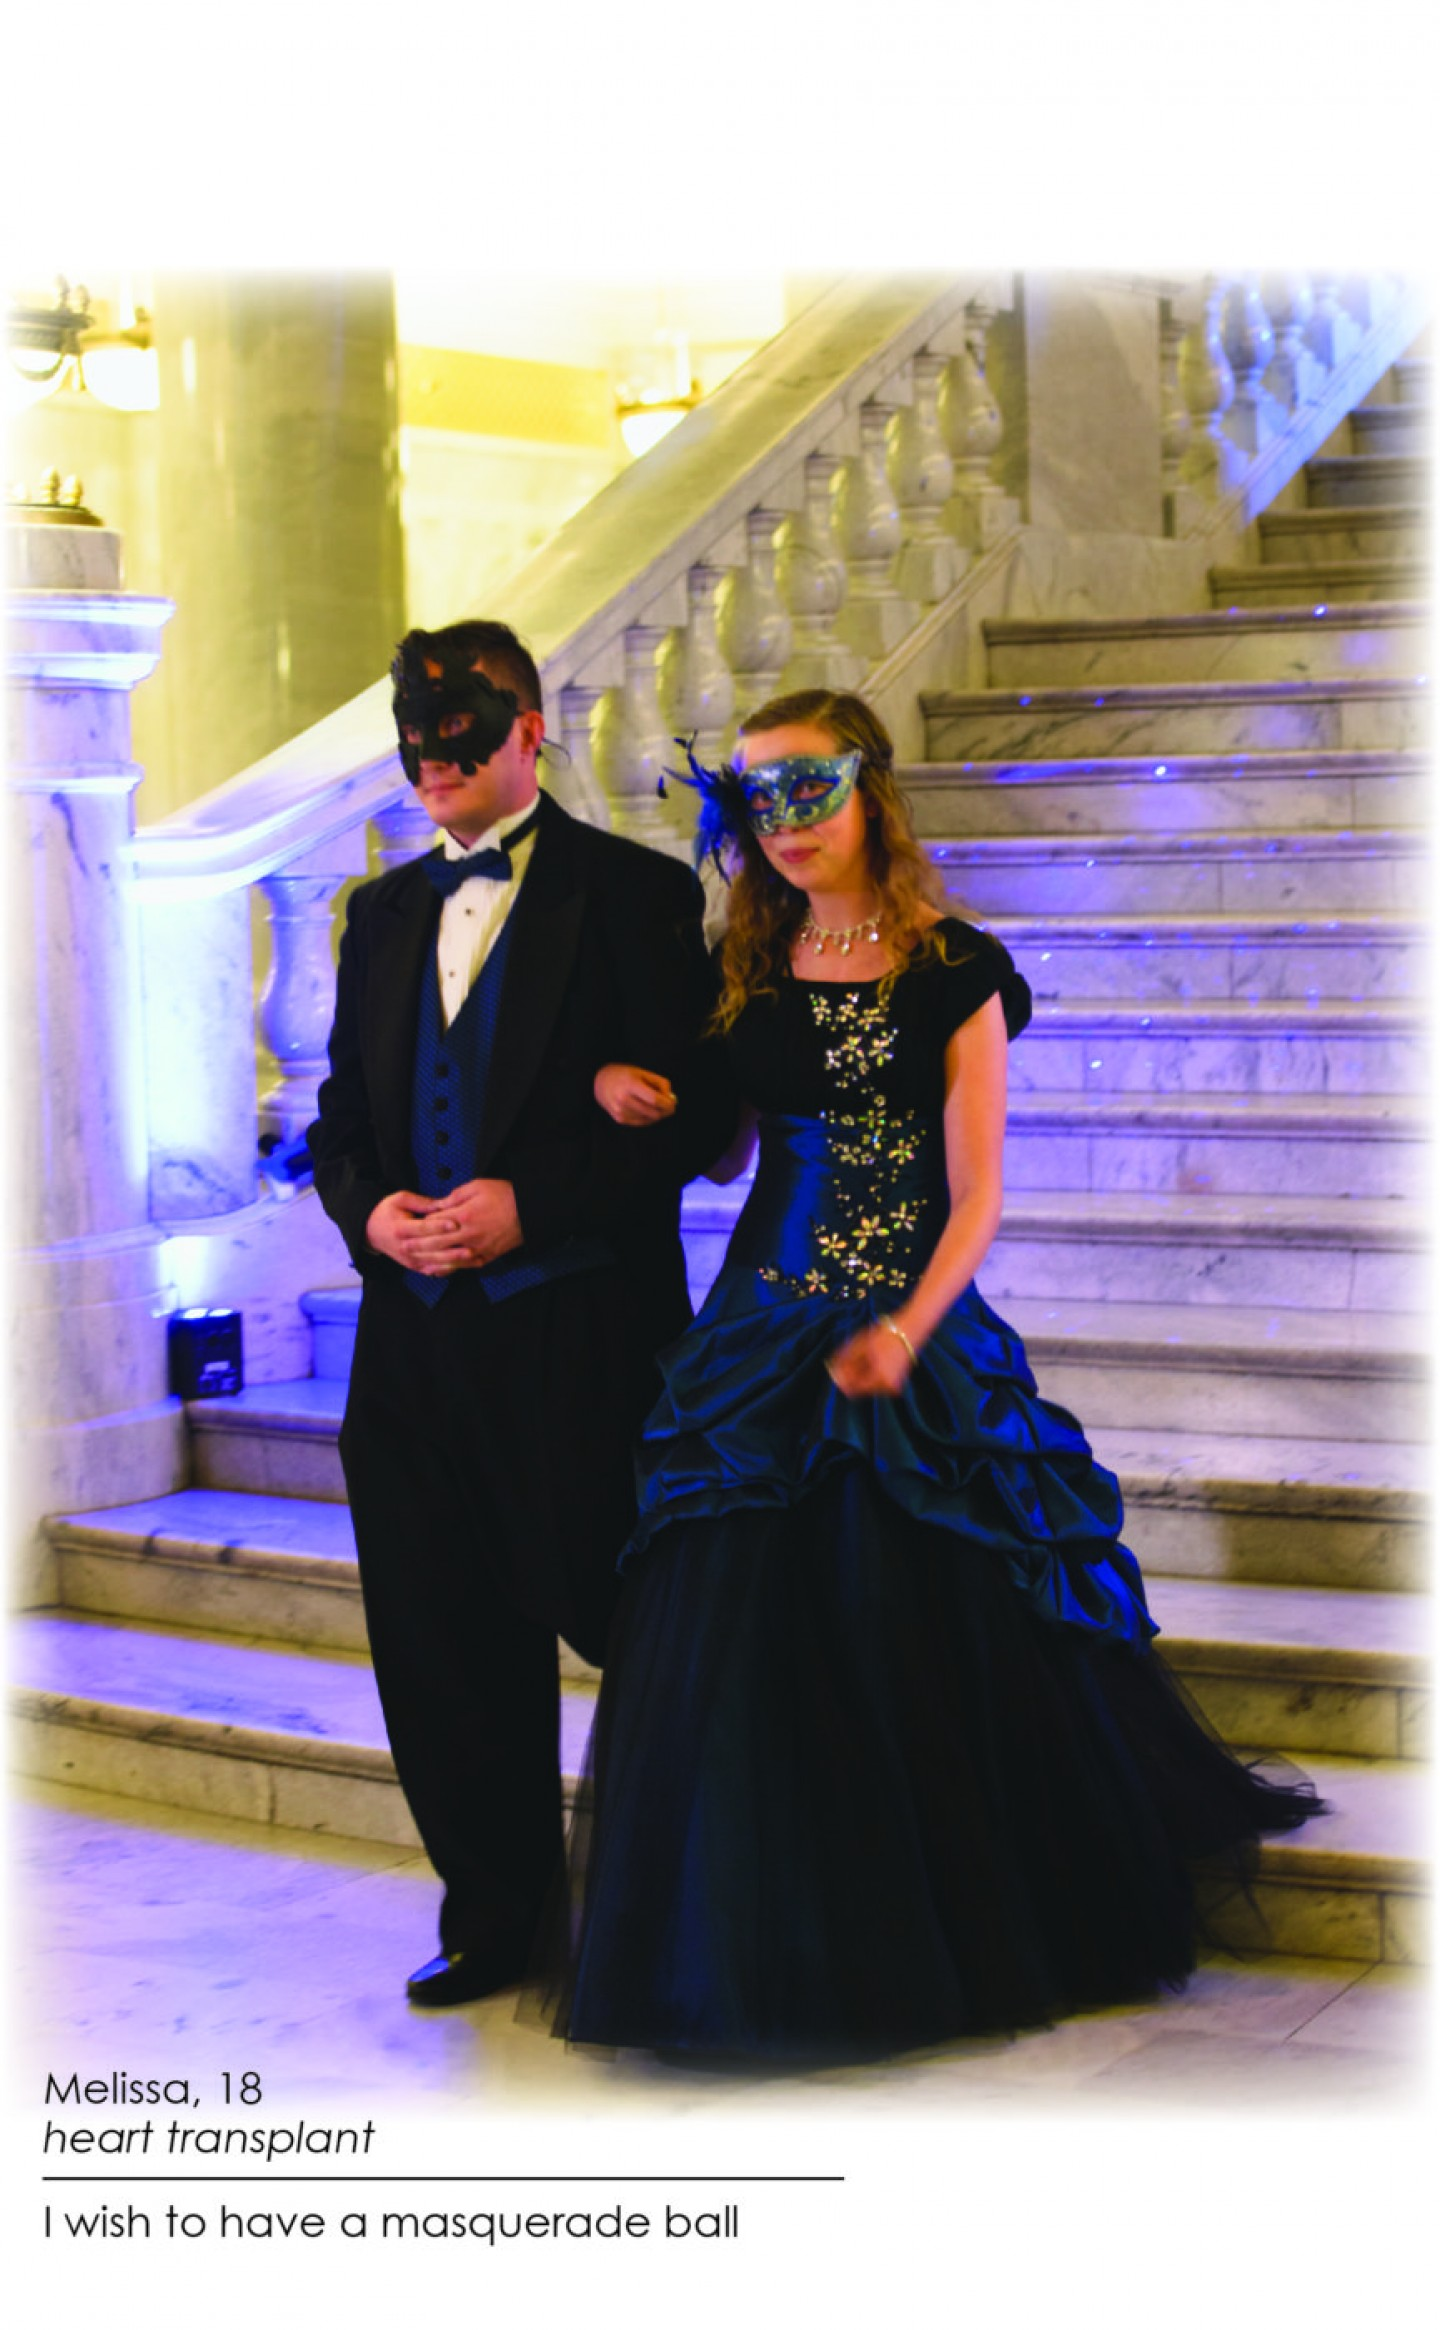 Melissa wished to have a Masquerade Ball